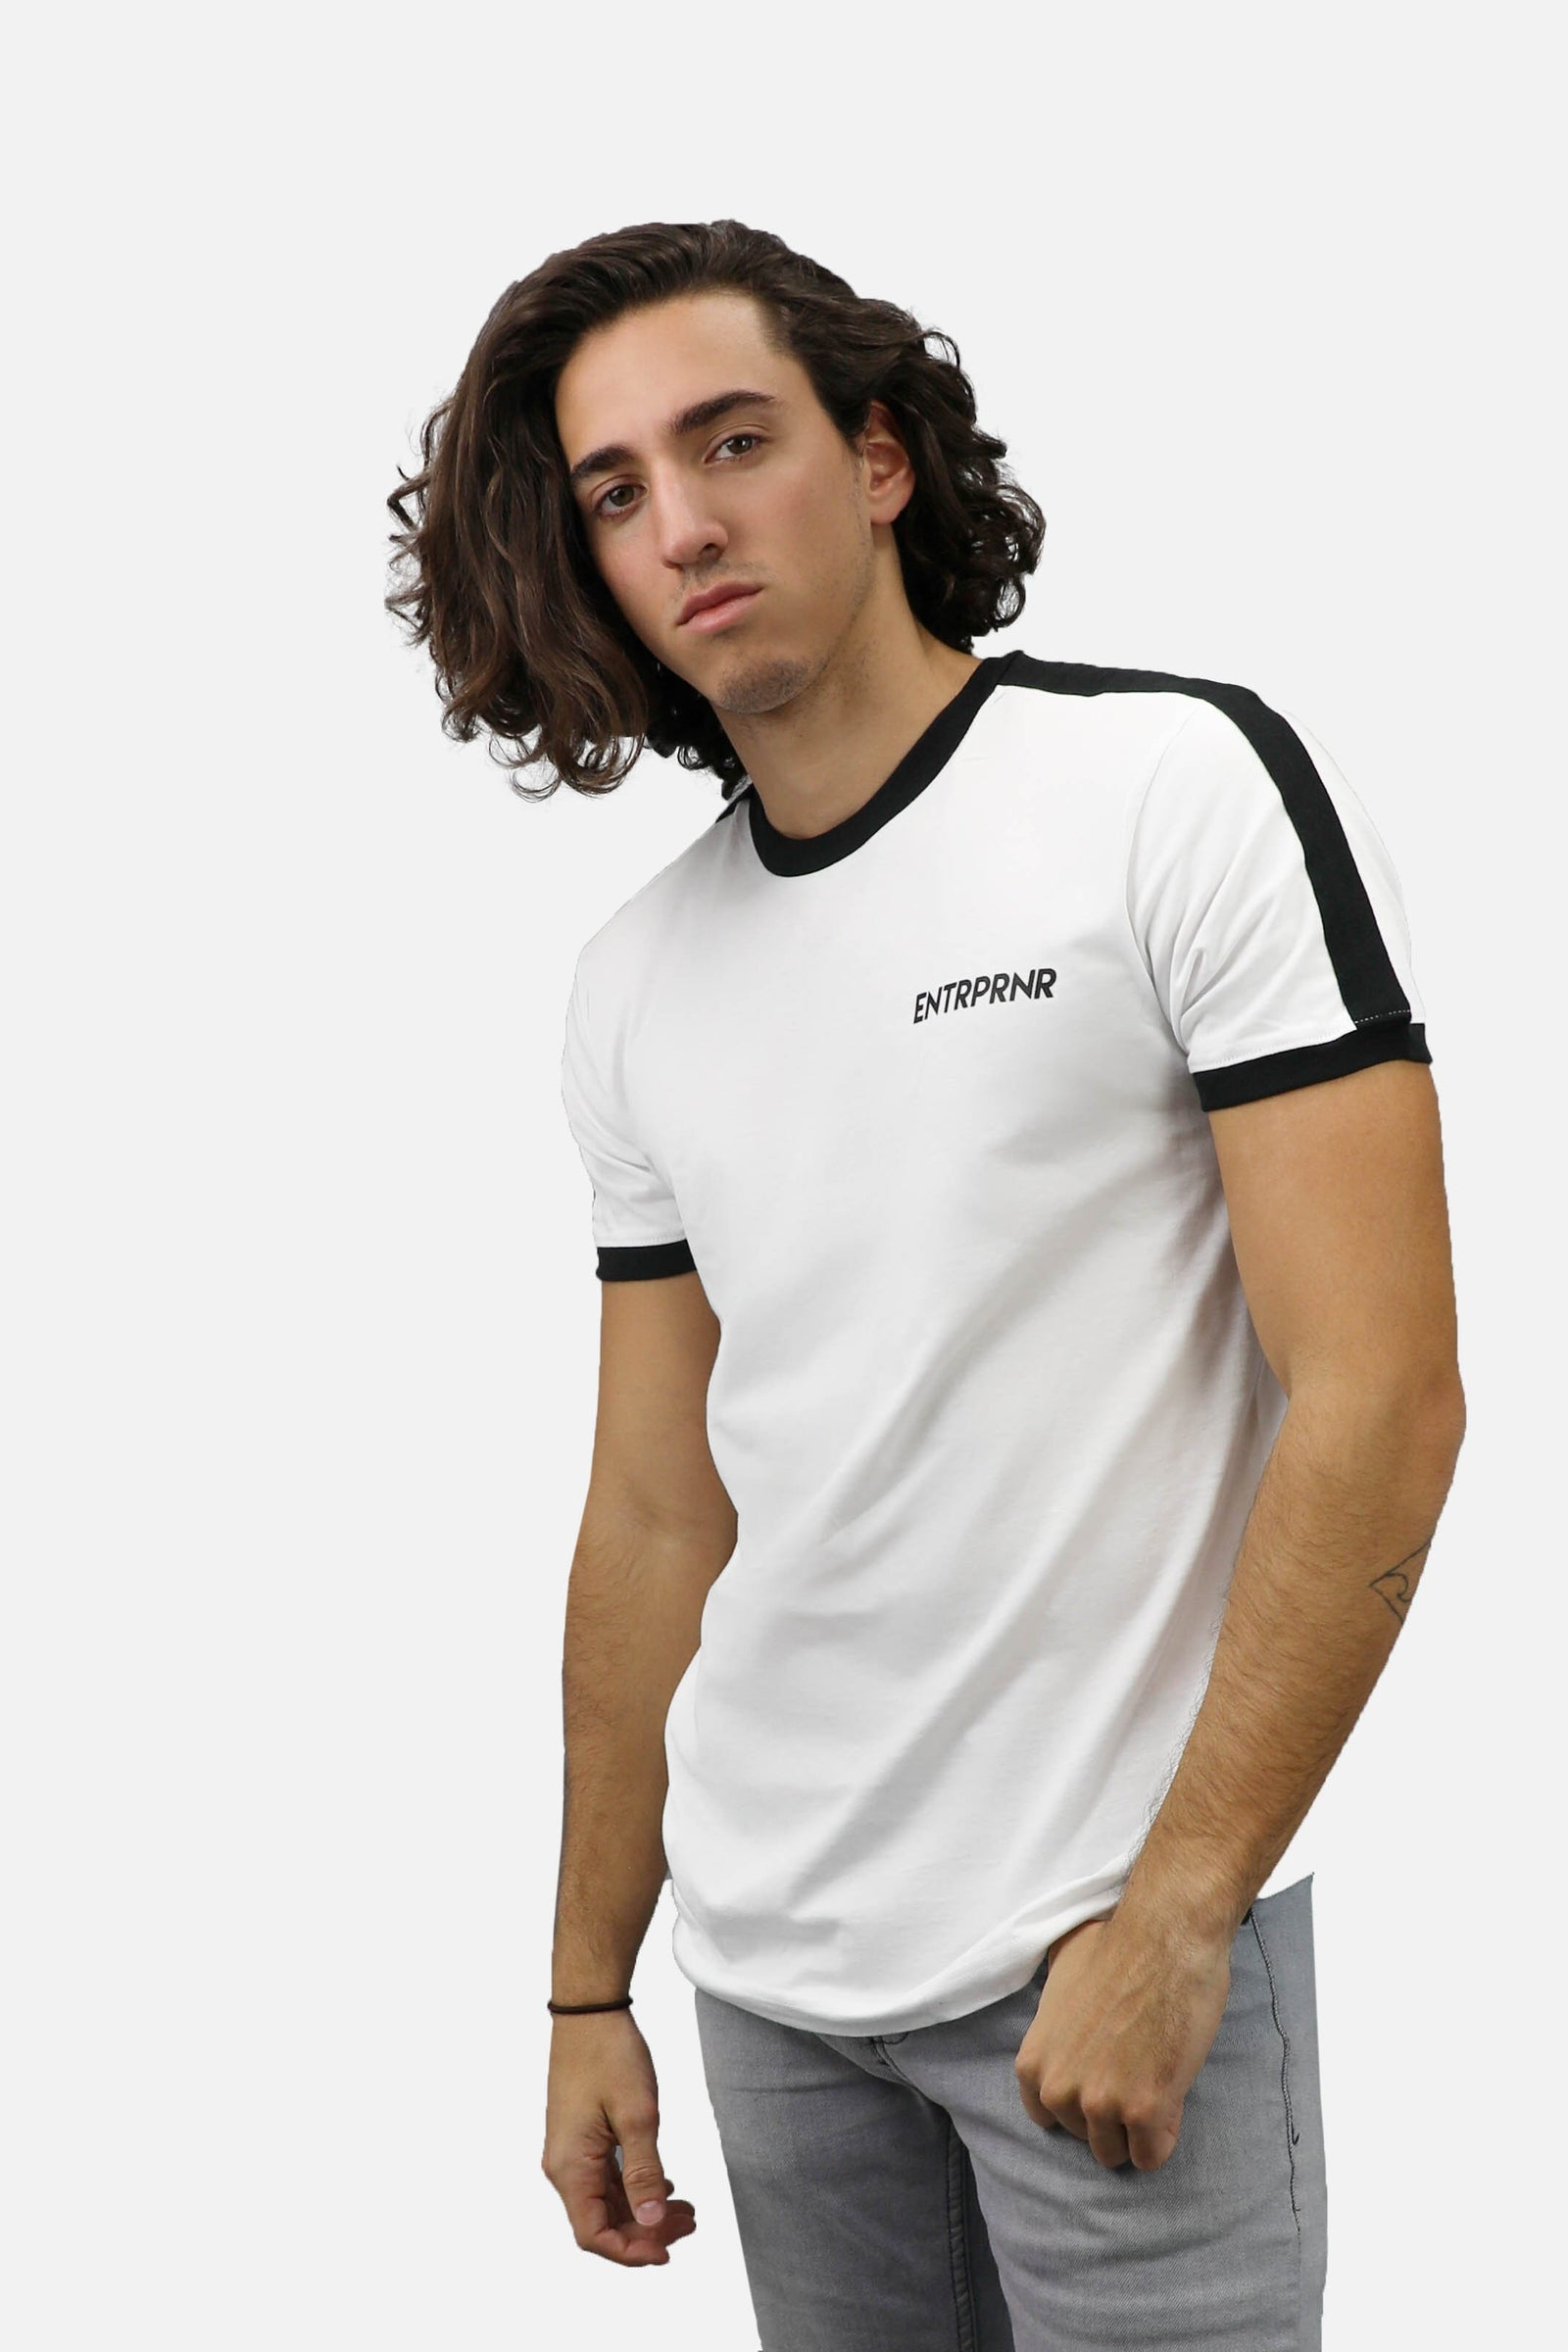 Athletic Ringer ENTRPRNR Tee – White - ENTRPRNR® | The Entrepreneur's Clothing Brand. | Stagnancy is the Enemy. Action is King.